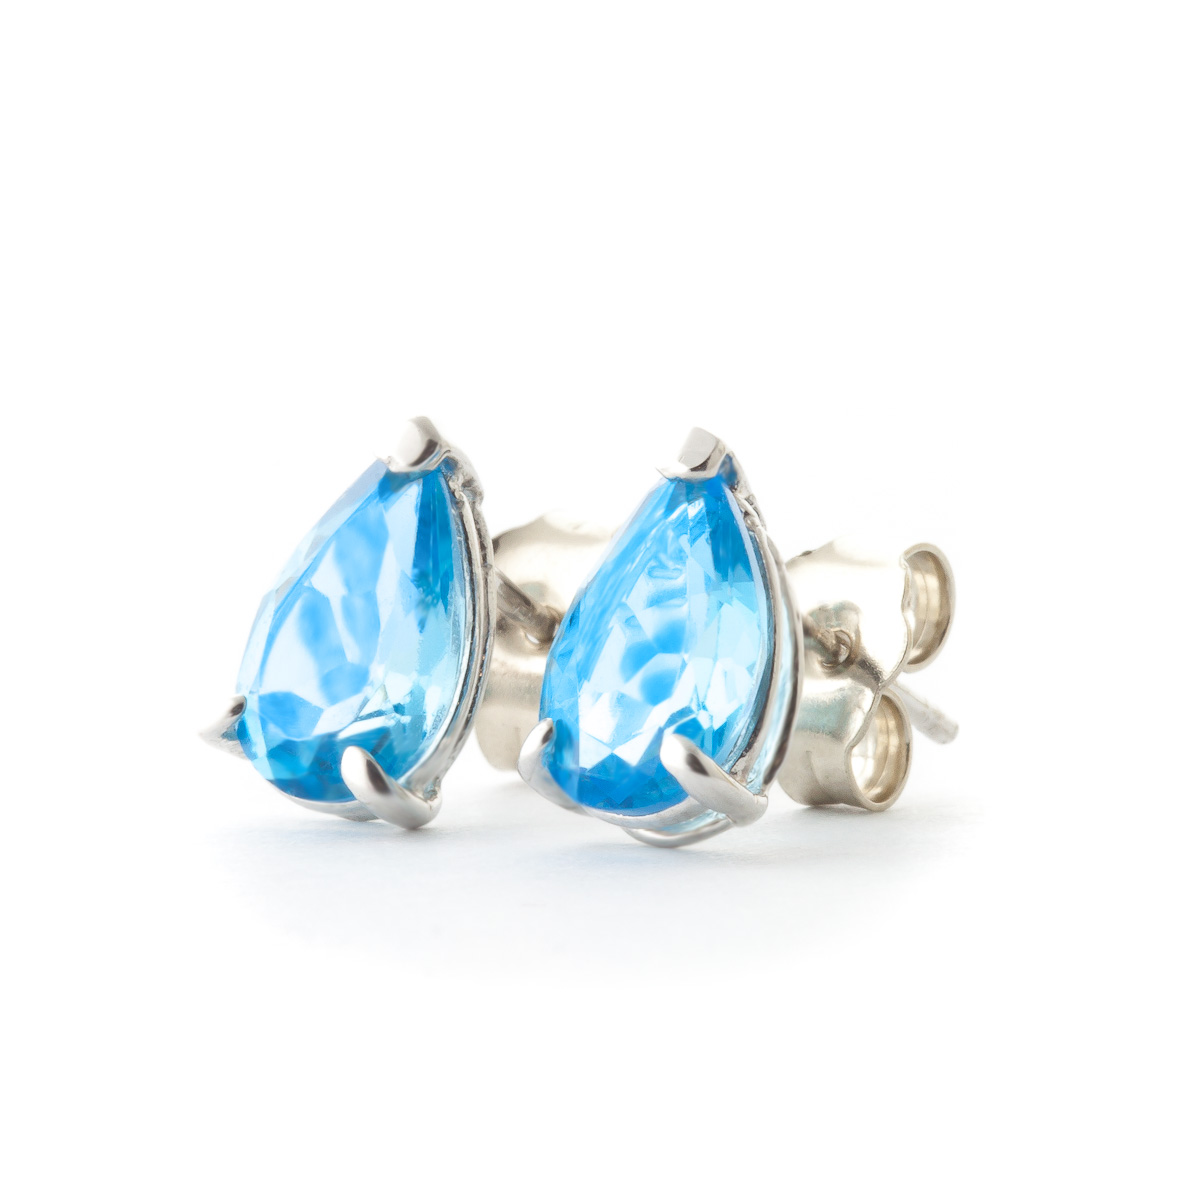 Blue Topaz Stud Earrings 3.15ctw in 9ct White Gold